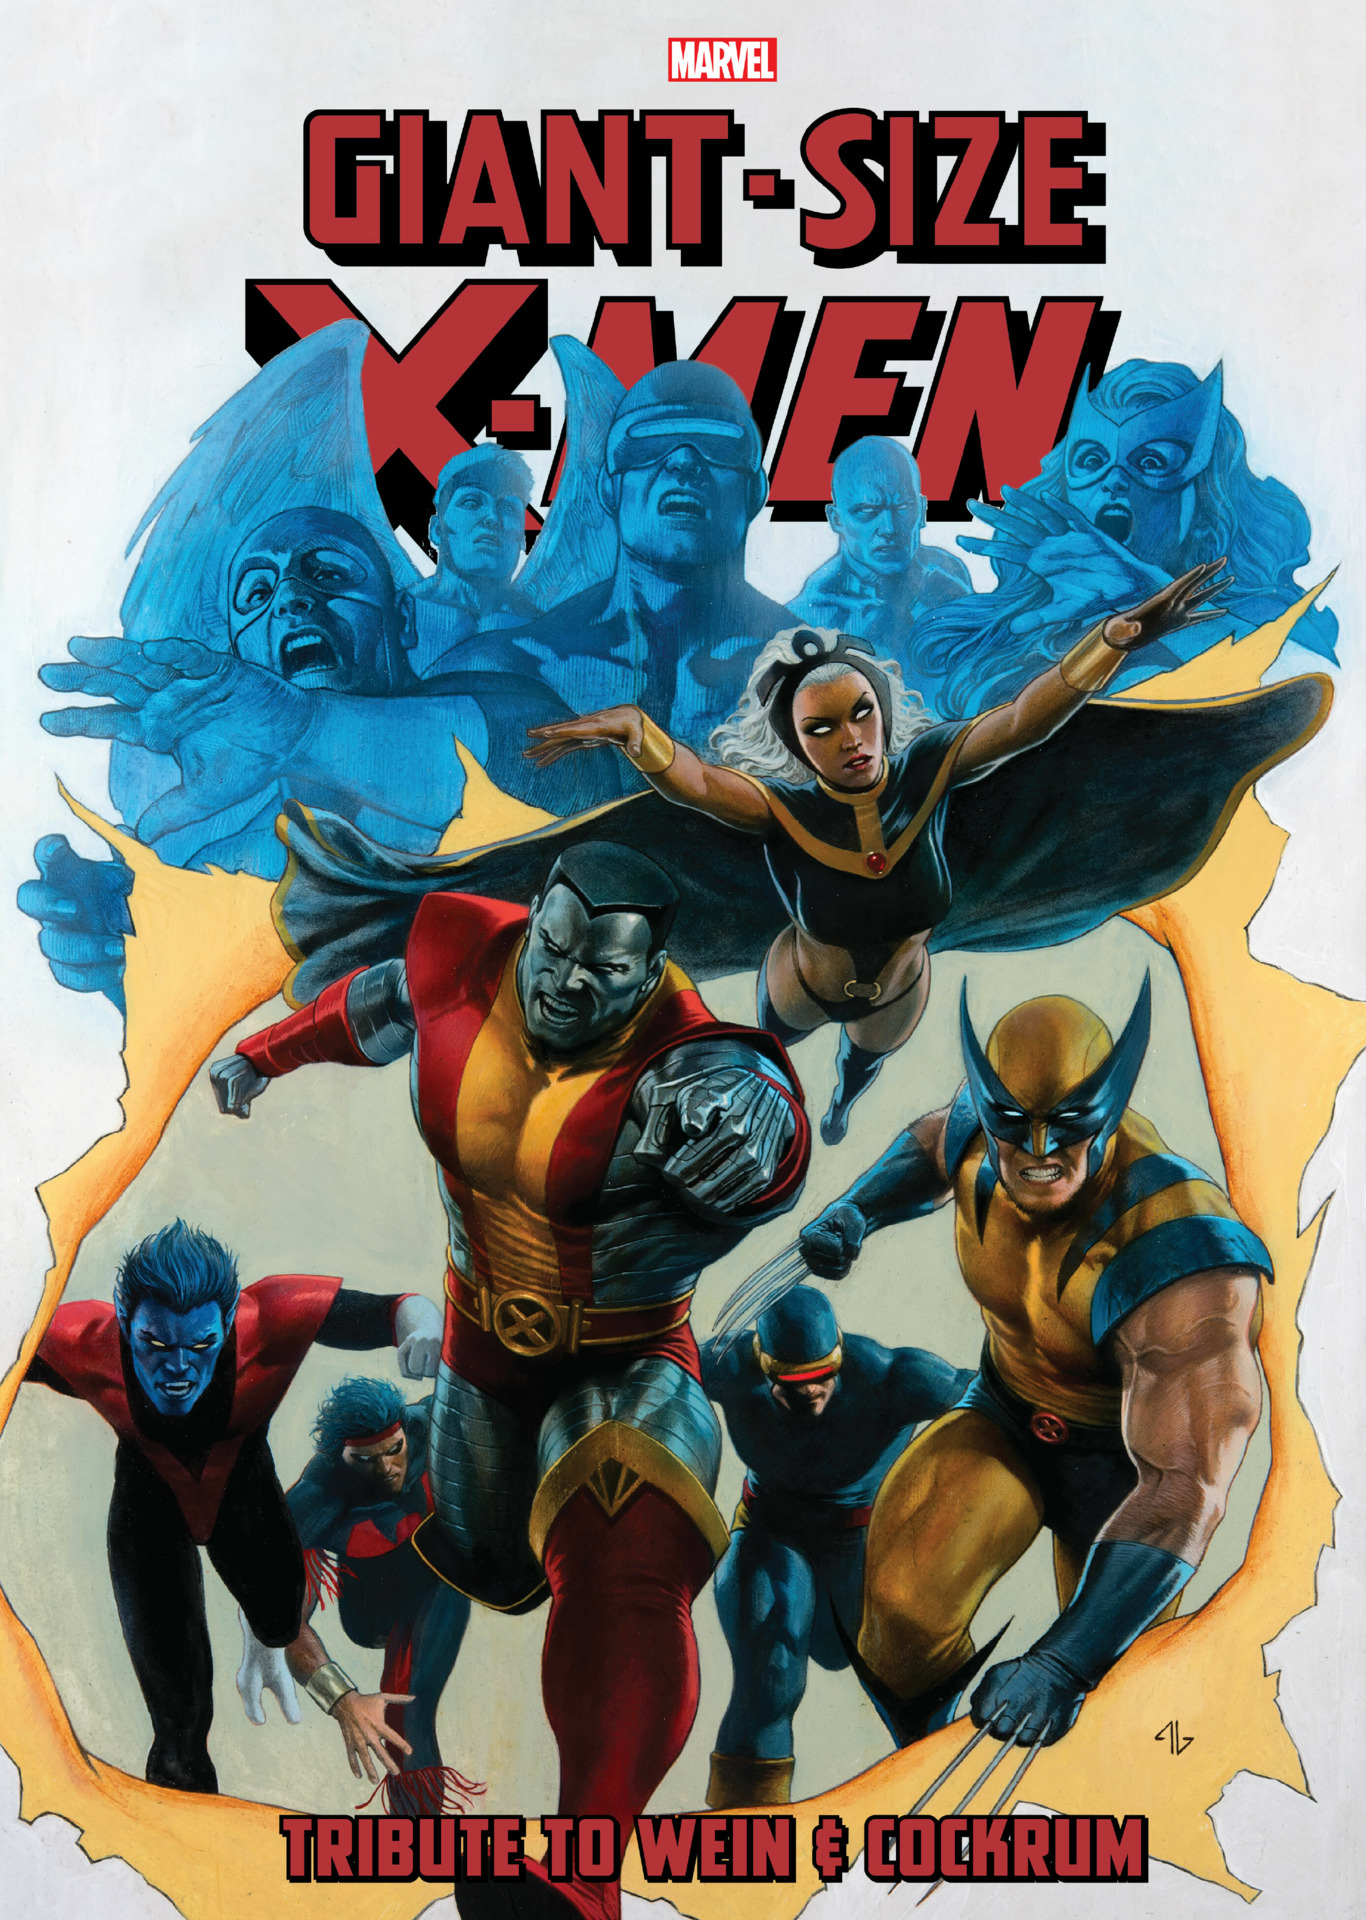 Giant-Size X-Men: Tribute To Wein & Cockrum Gallery Edition